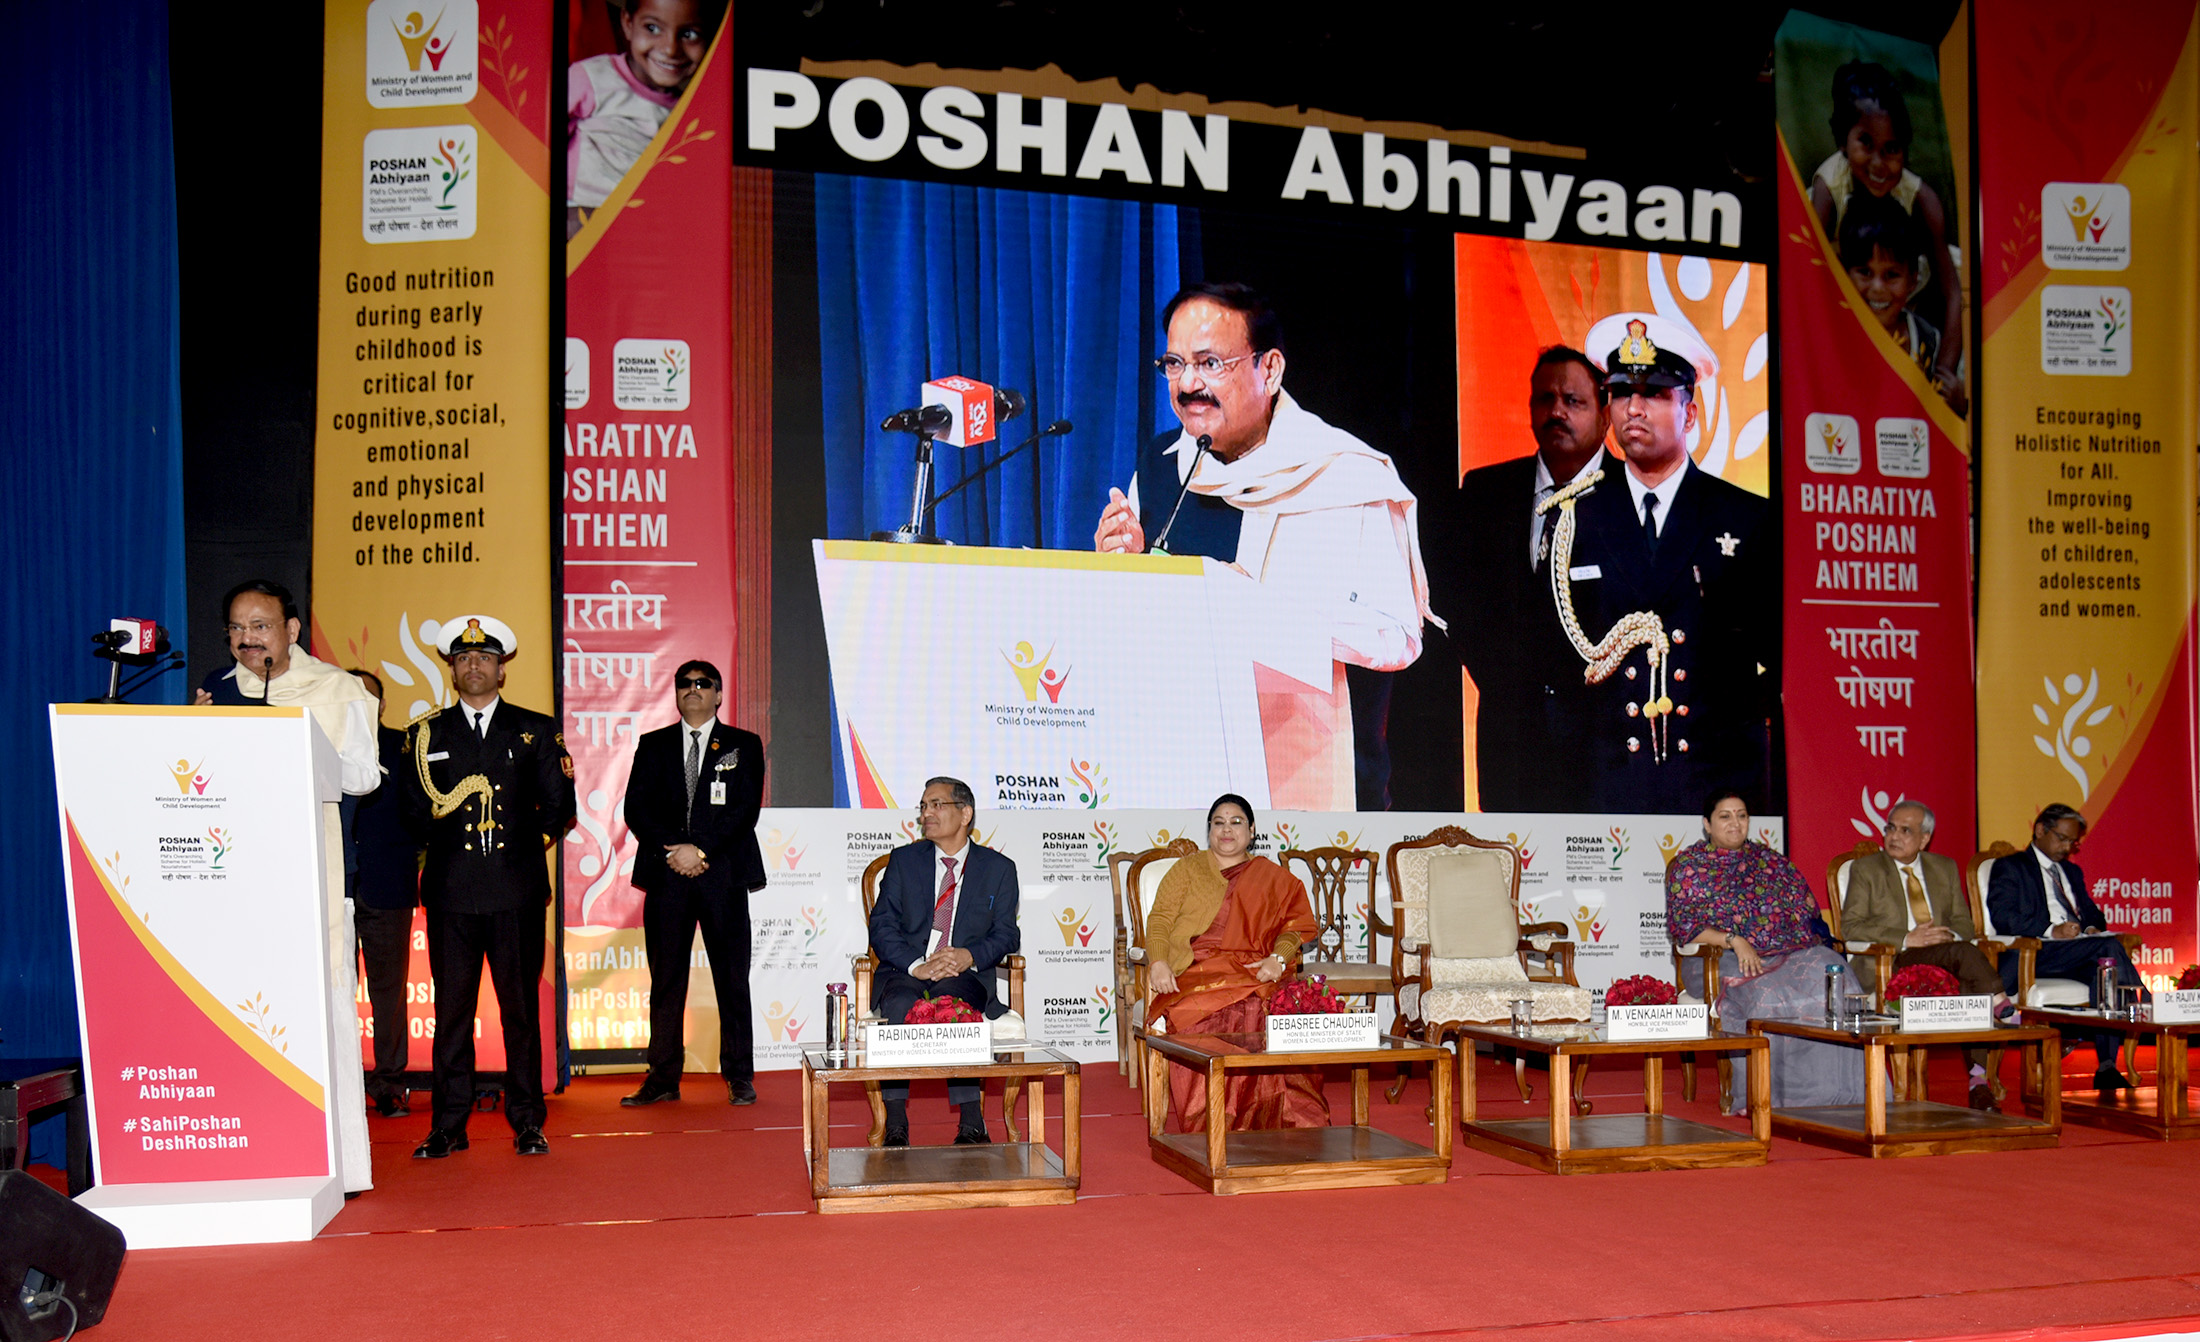 The Vice President, Shri M. Venkaiah Naidu addressing the gathering at the launch of the 'POSHAN Anthem' at an event organized by the Ministry of Women and Child Development, in New Delhi on 03 December, 2019.